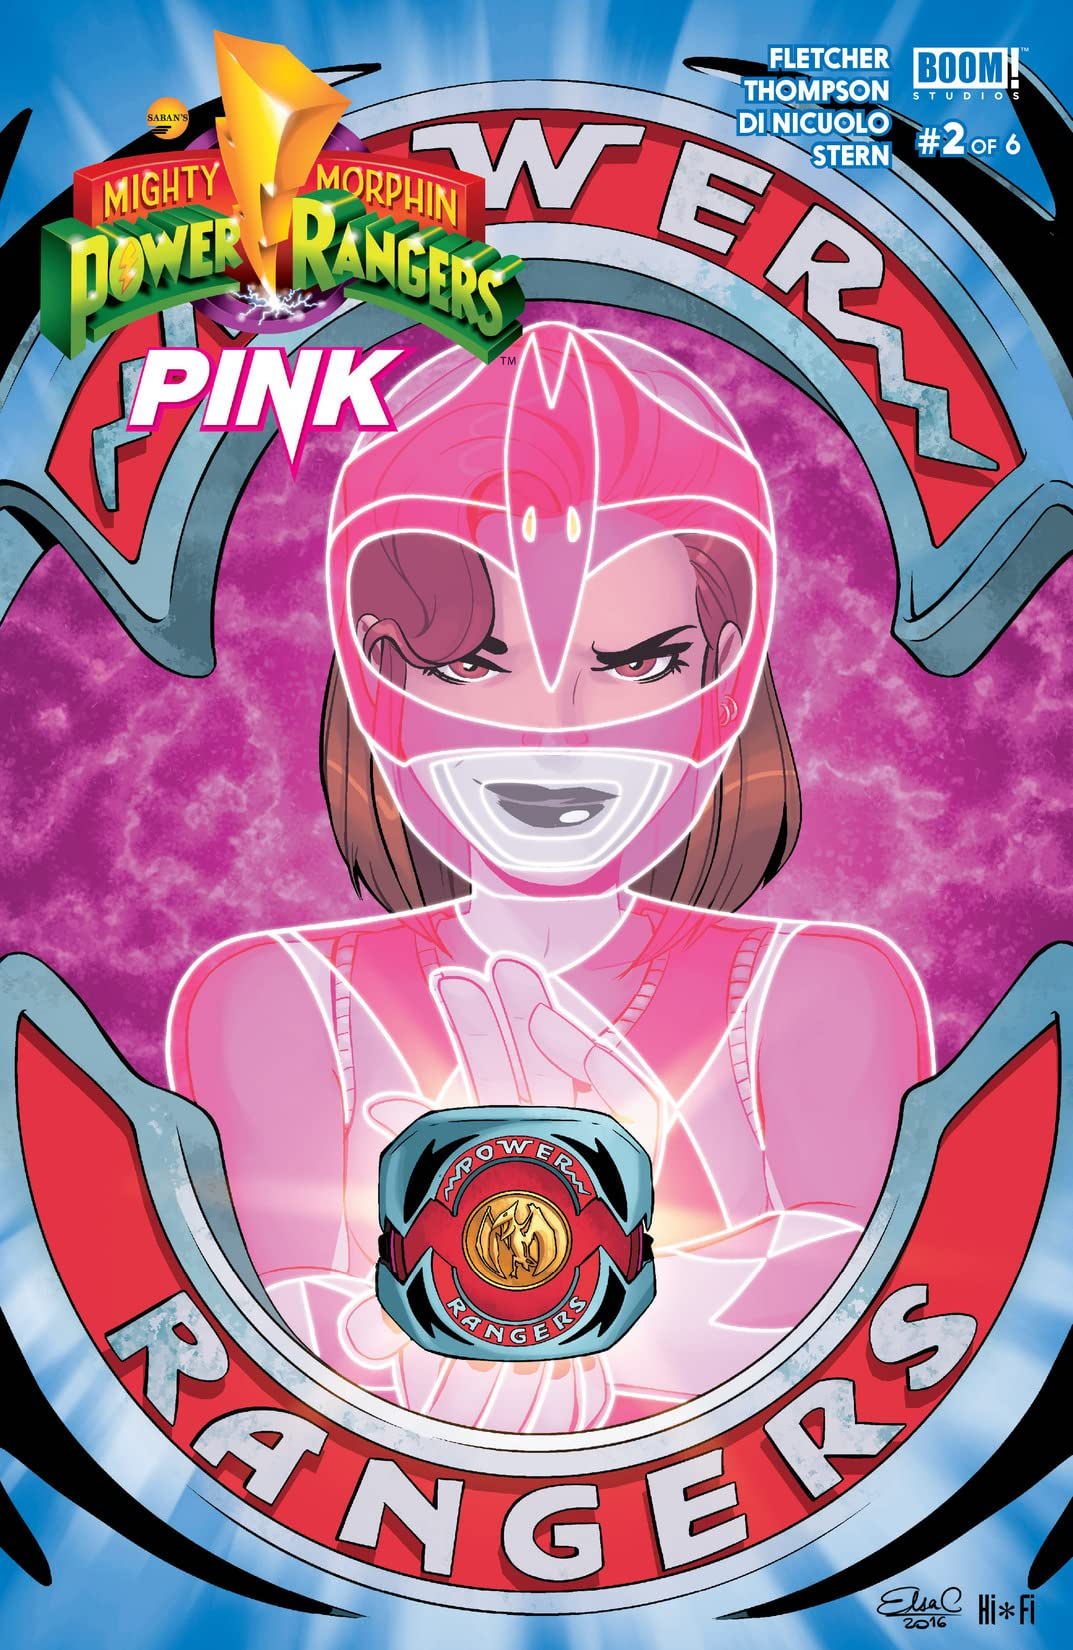 Mighty Morphin Power Rangers: Pink #2 (of 6)